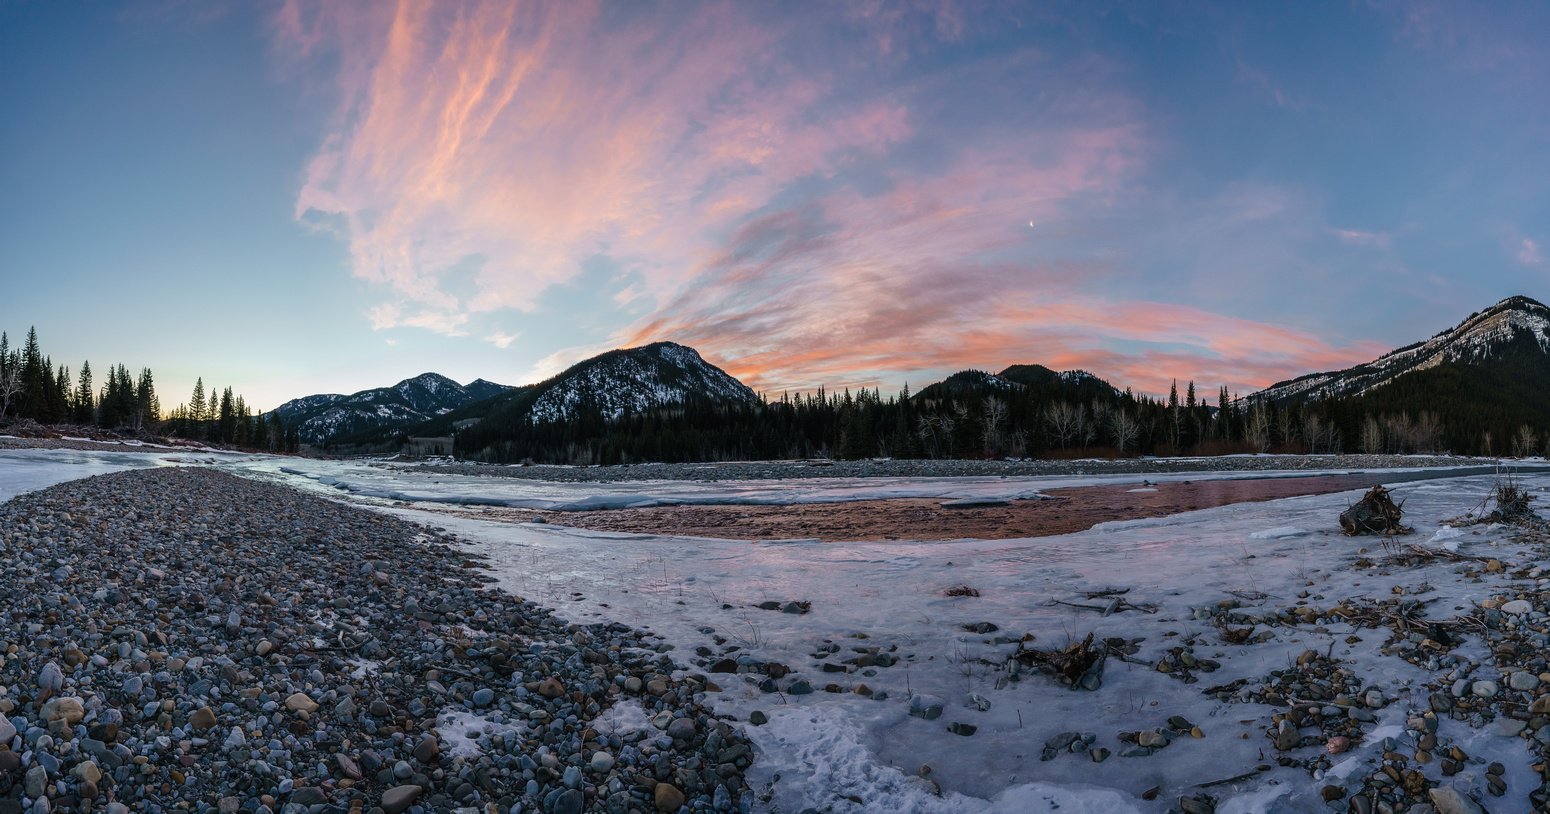 Sunrise views along the Highwood River. The north end of North Limestone Ridge is the second ridge from left here.